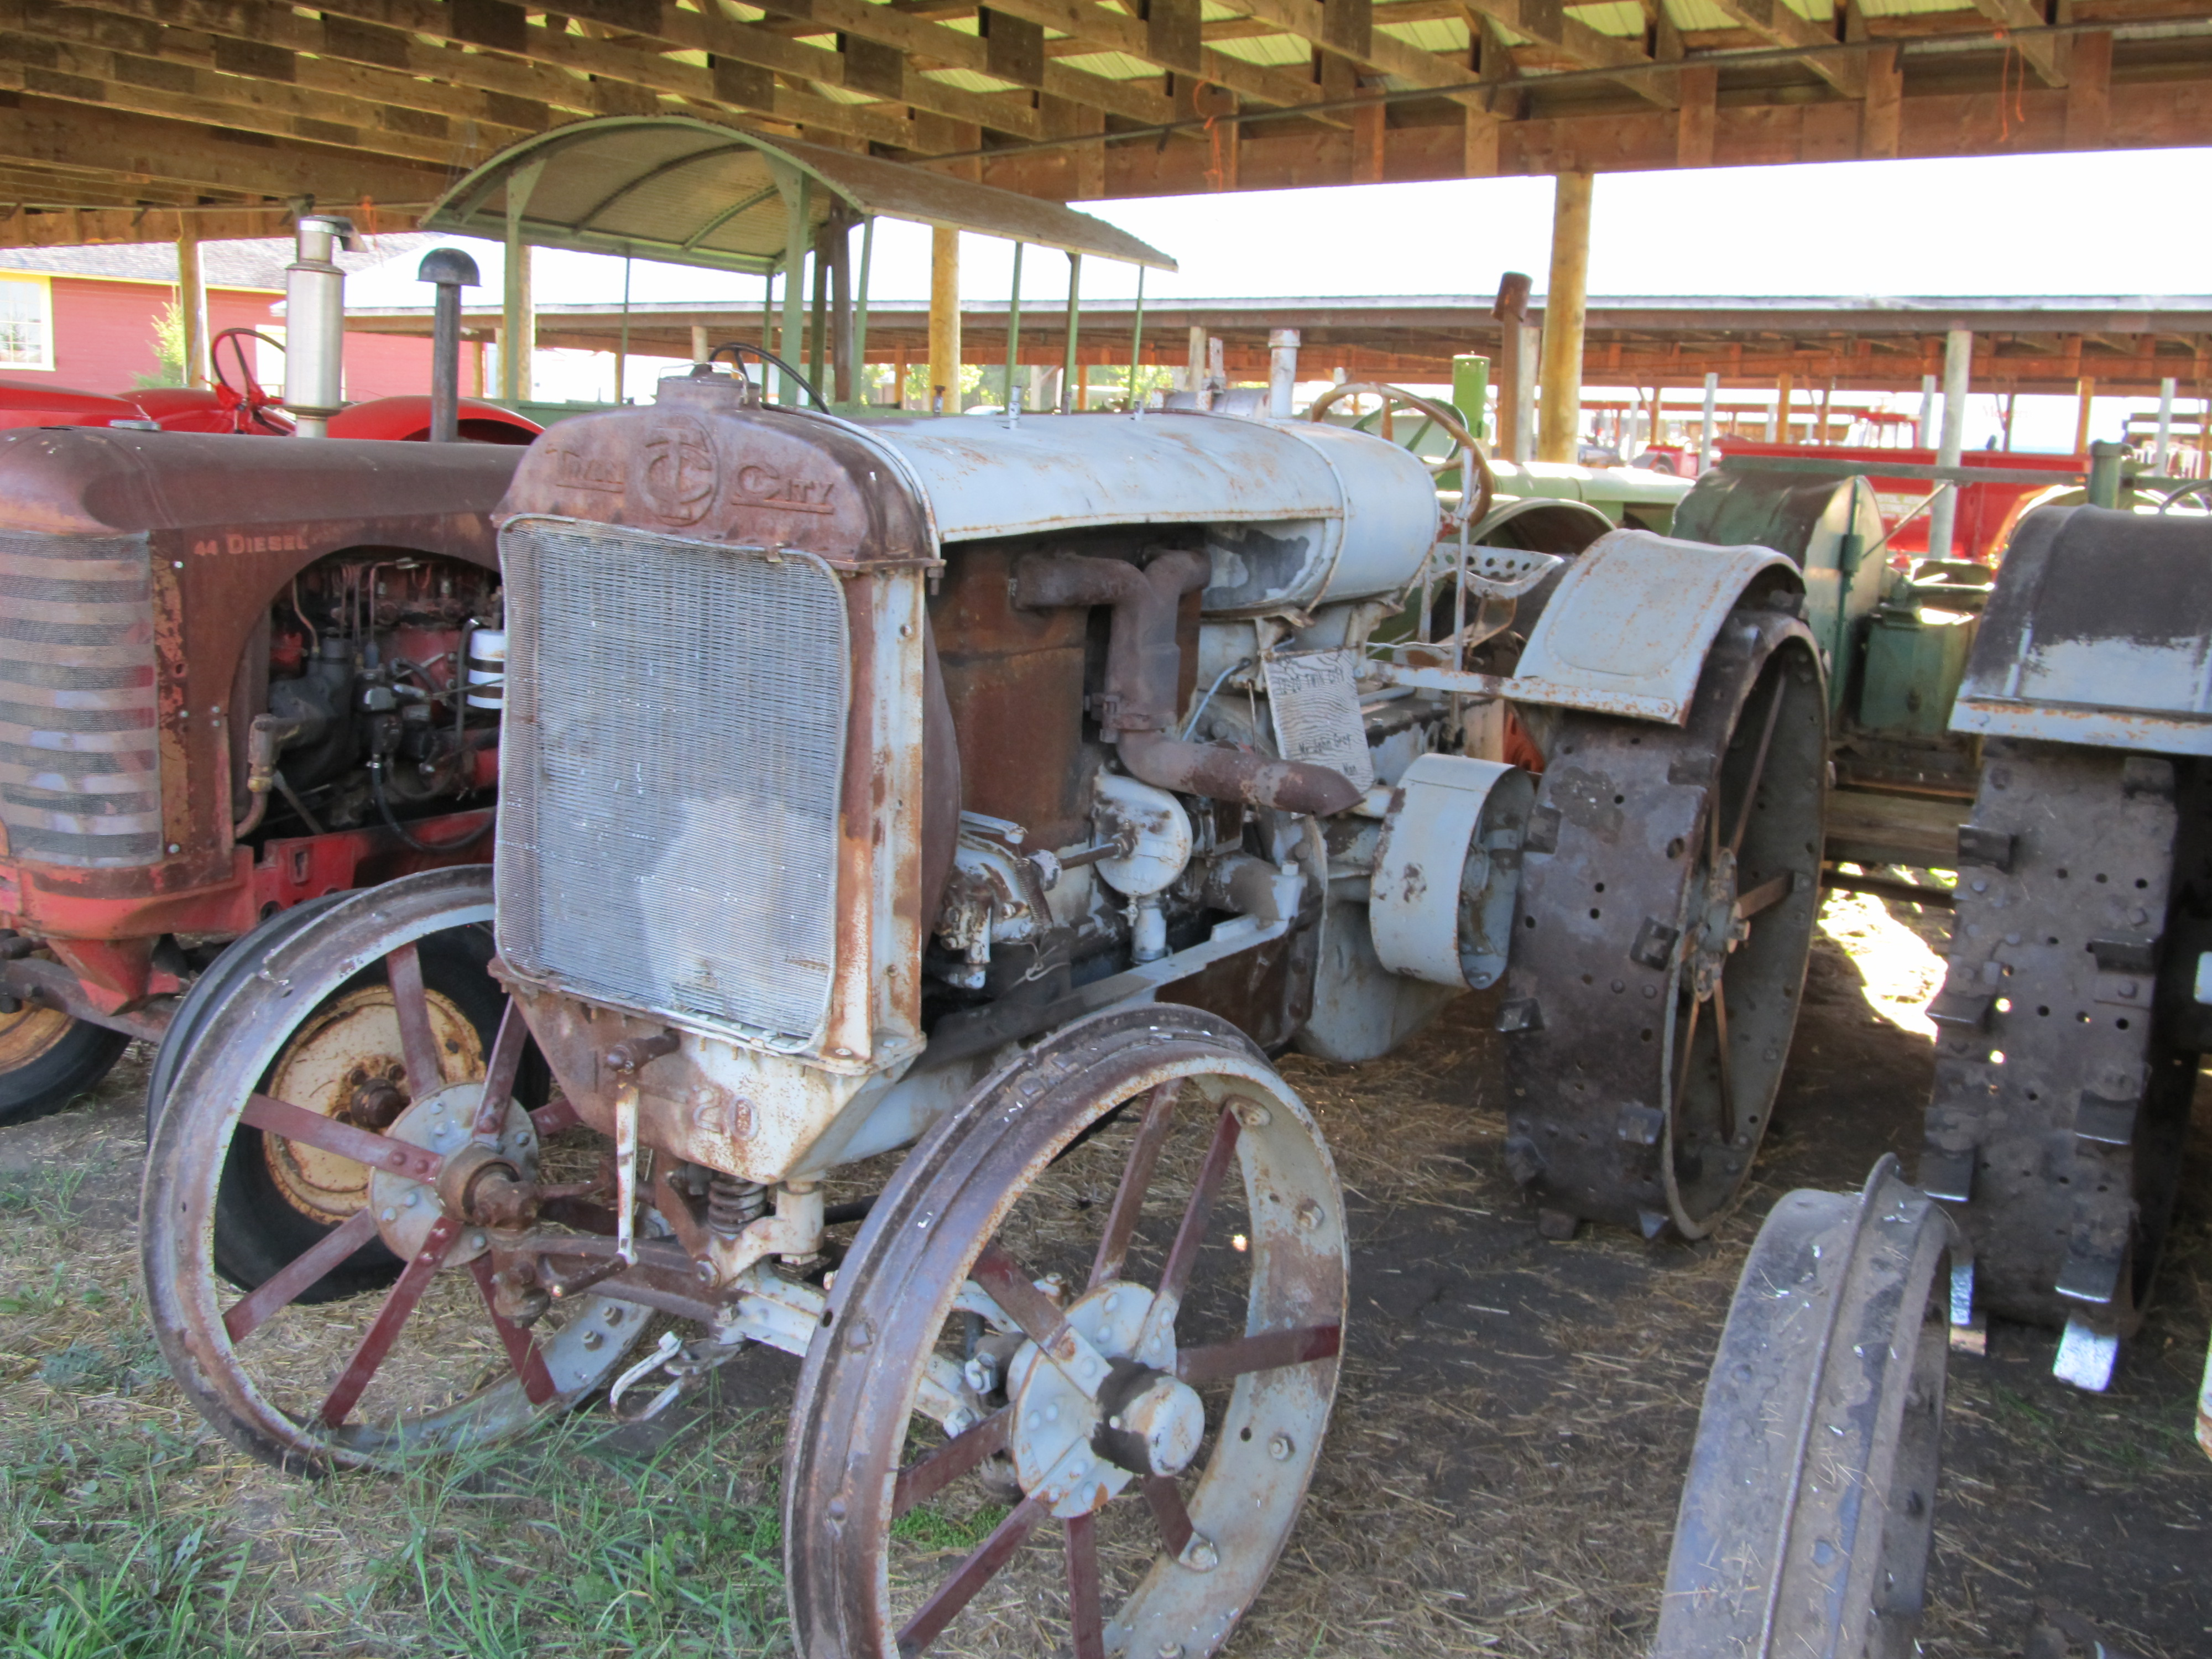 Twin City 12-20 (1920) - Manitoba Agricultural Museum